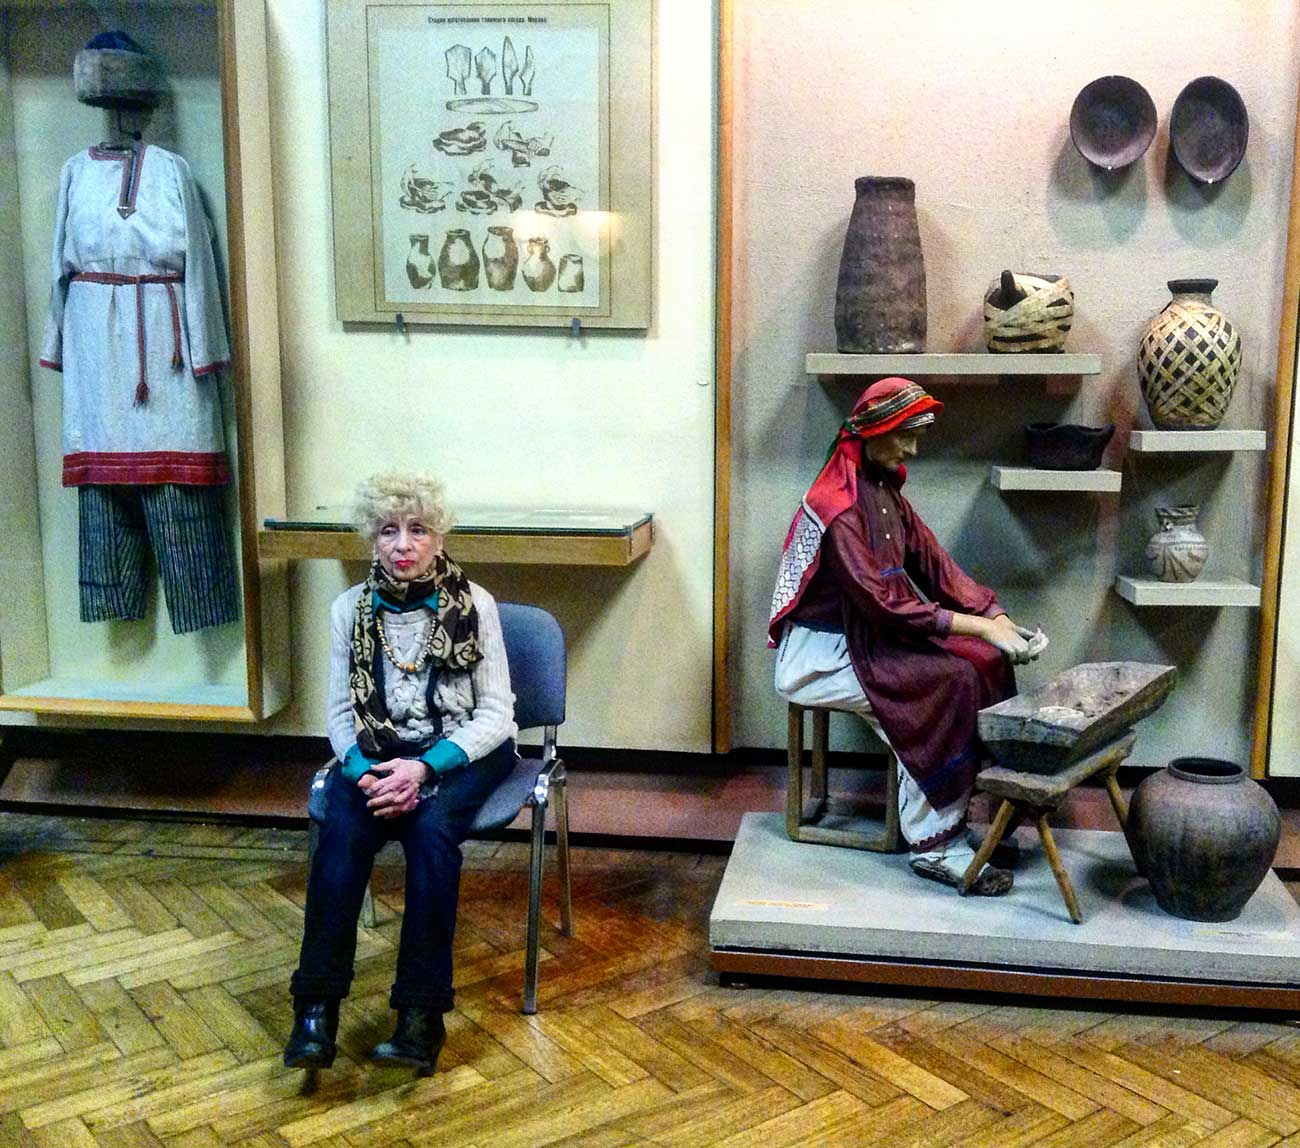 An attendant at the Russian Museum of Ethnography in St. Petersburg. Source: Elena Bobrova